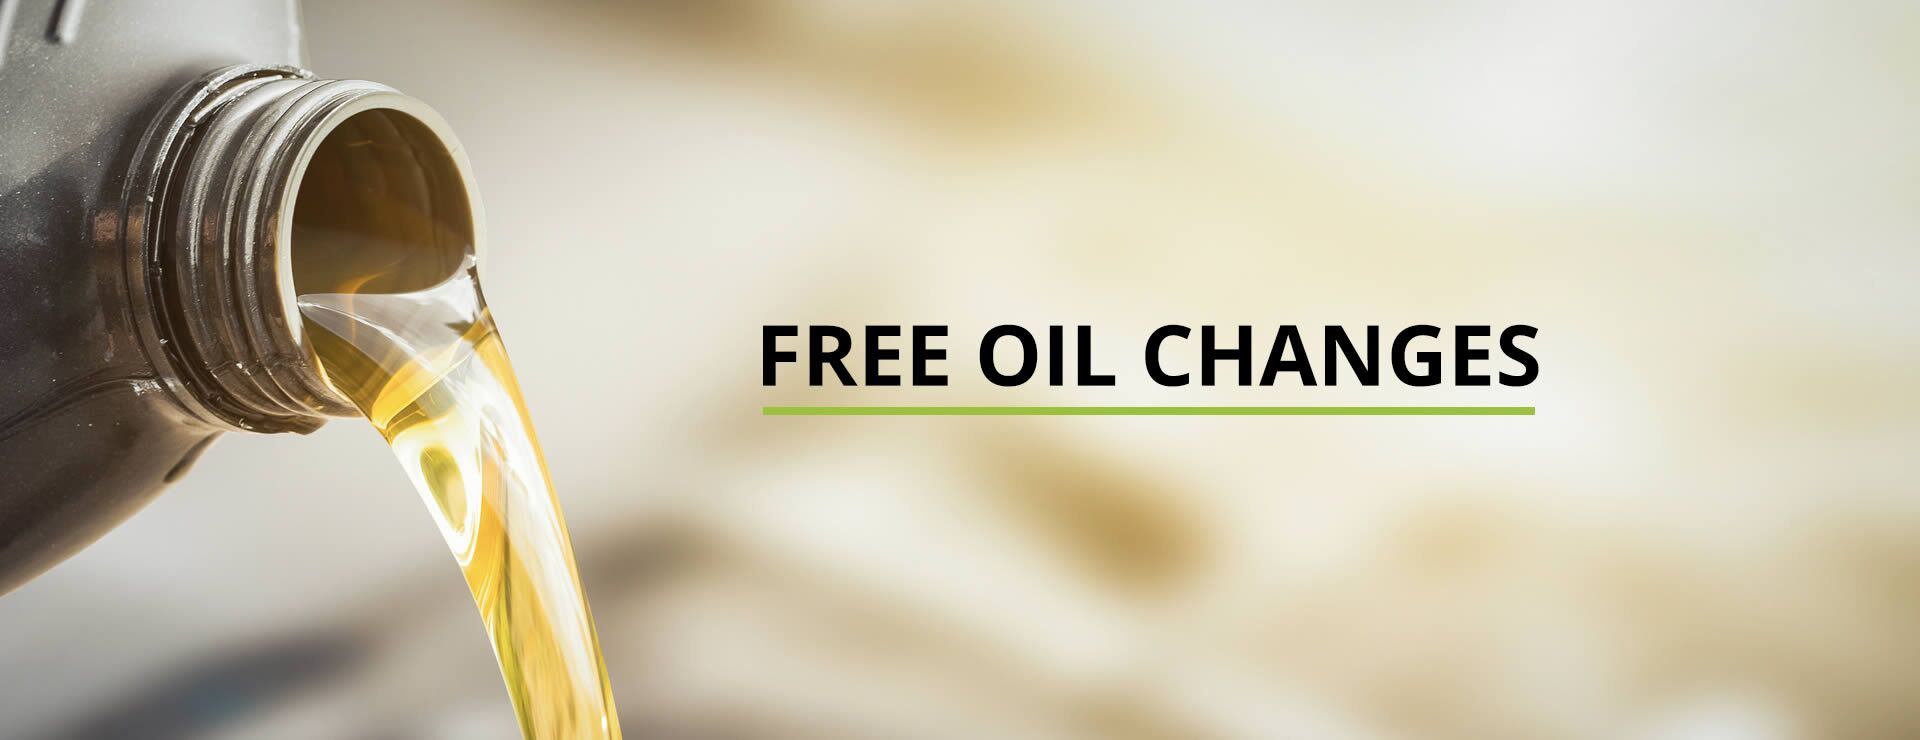 Free Oil Changes at Coast To Coast Motors